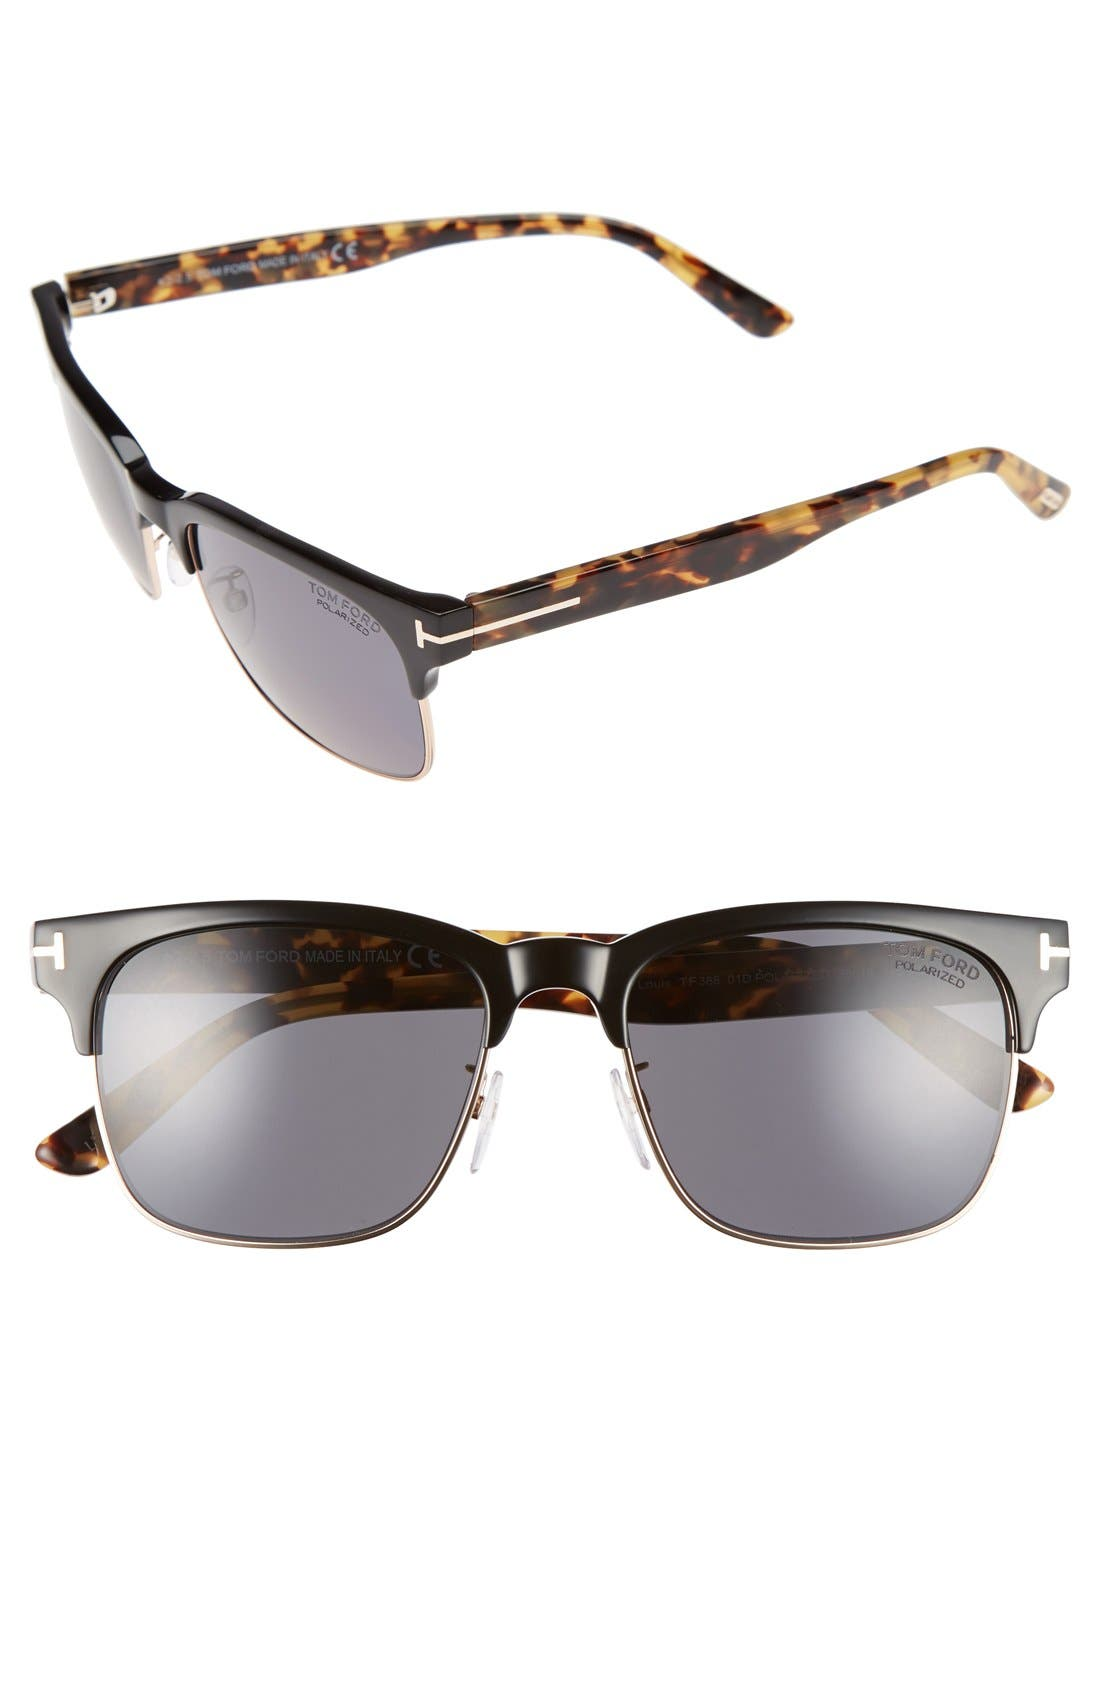 Alternate Image 1 Selected - Tom Ford 'Louis' 55mm Polarized Sunglasses